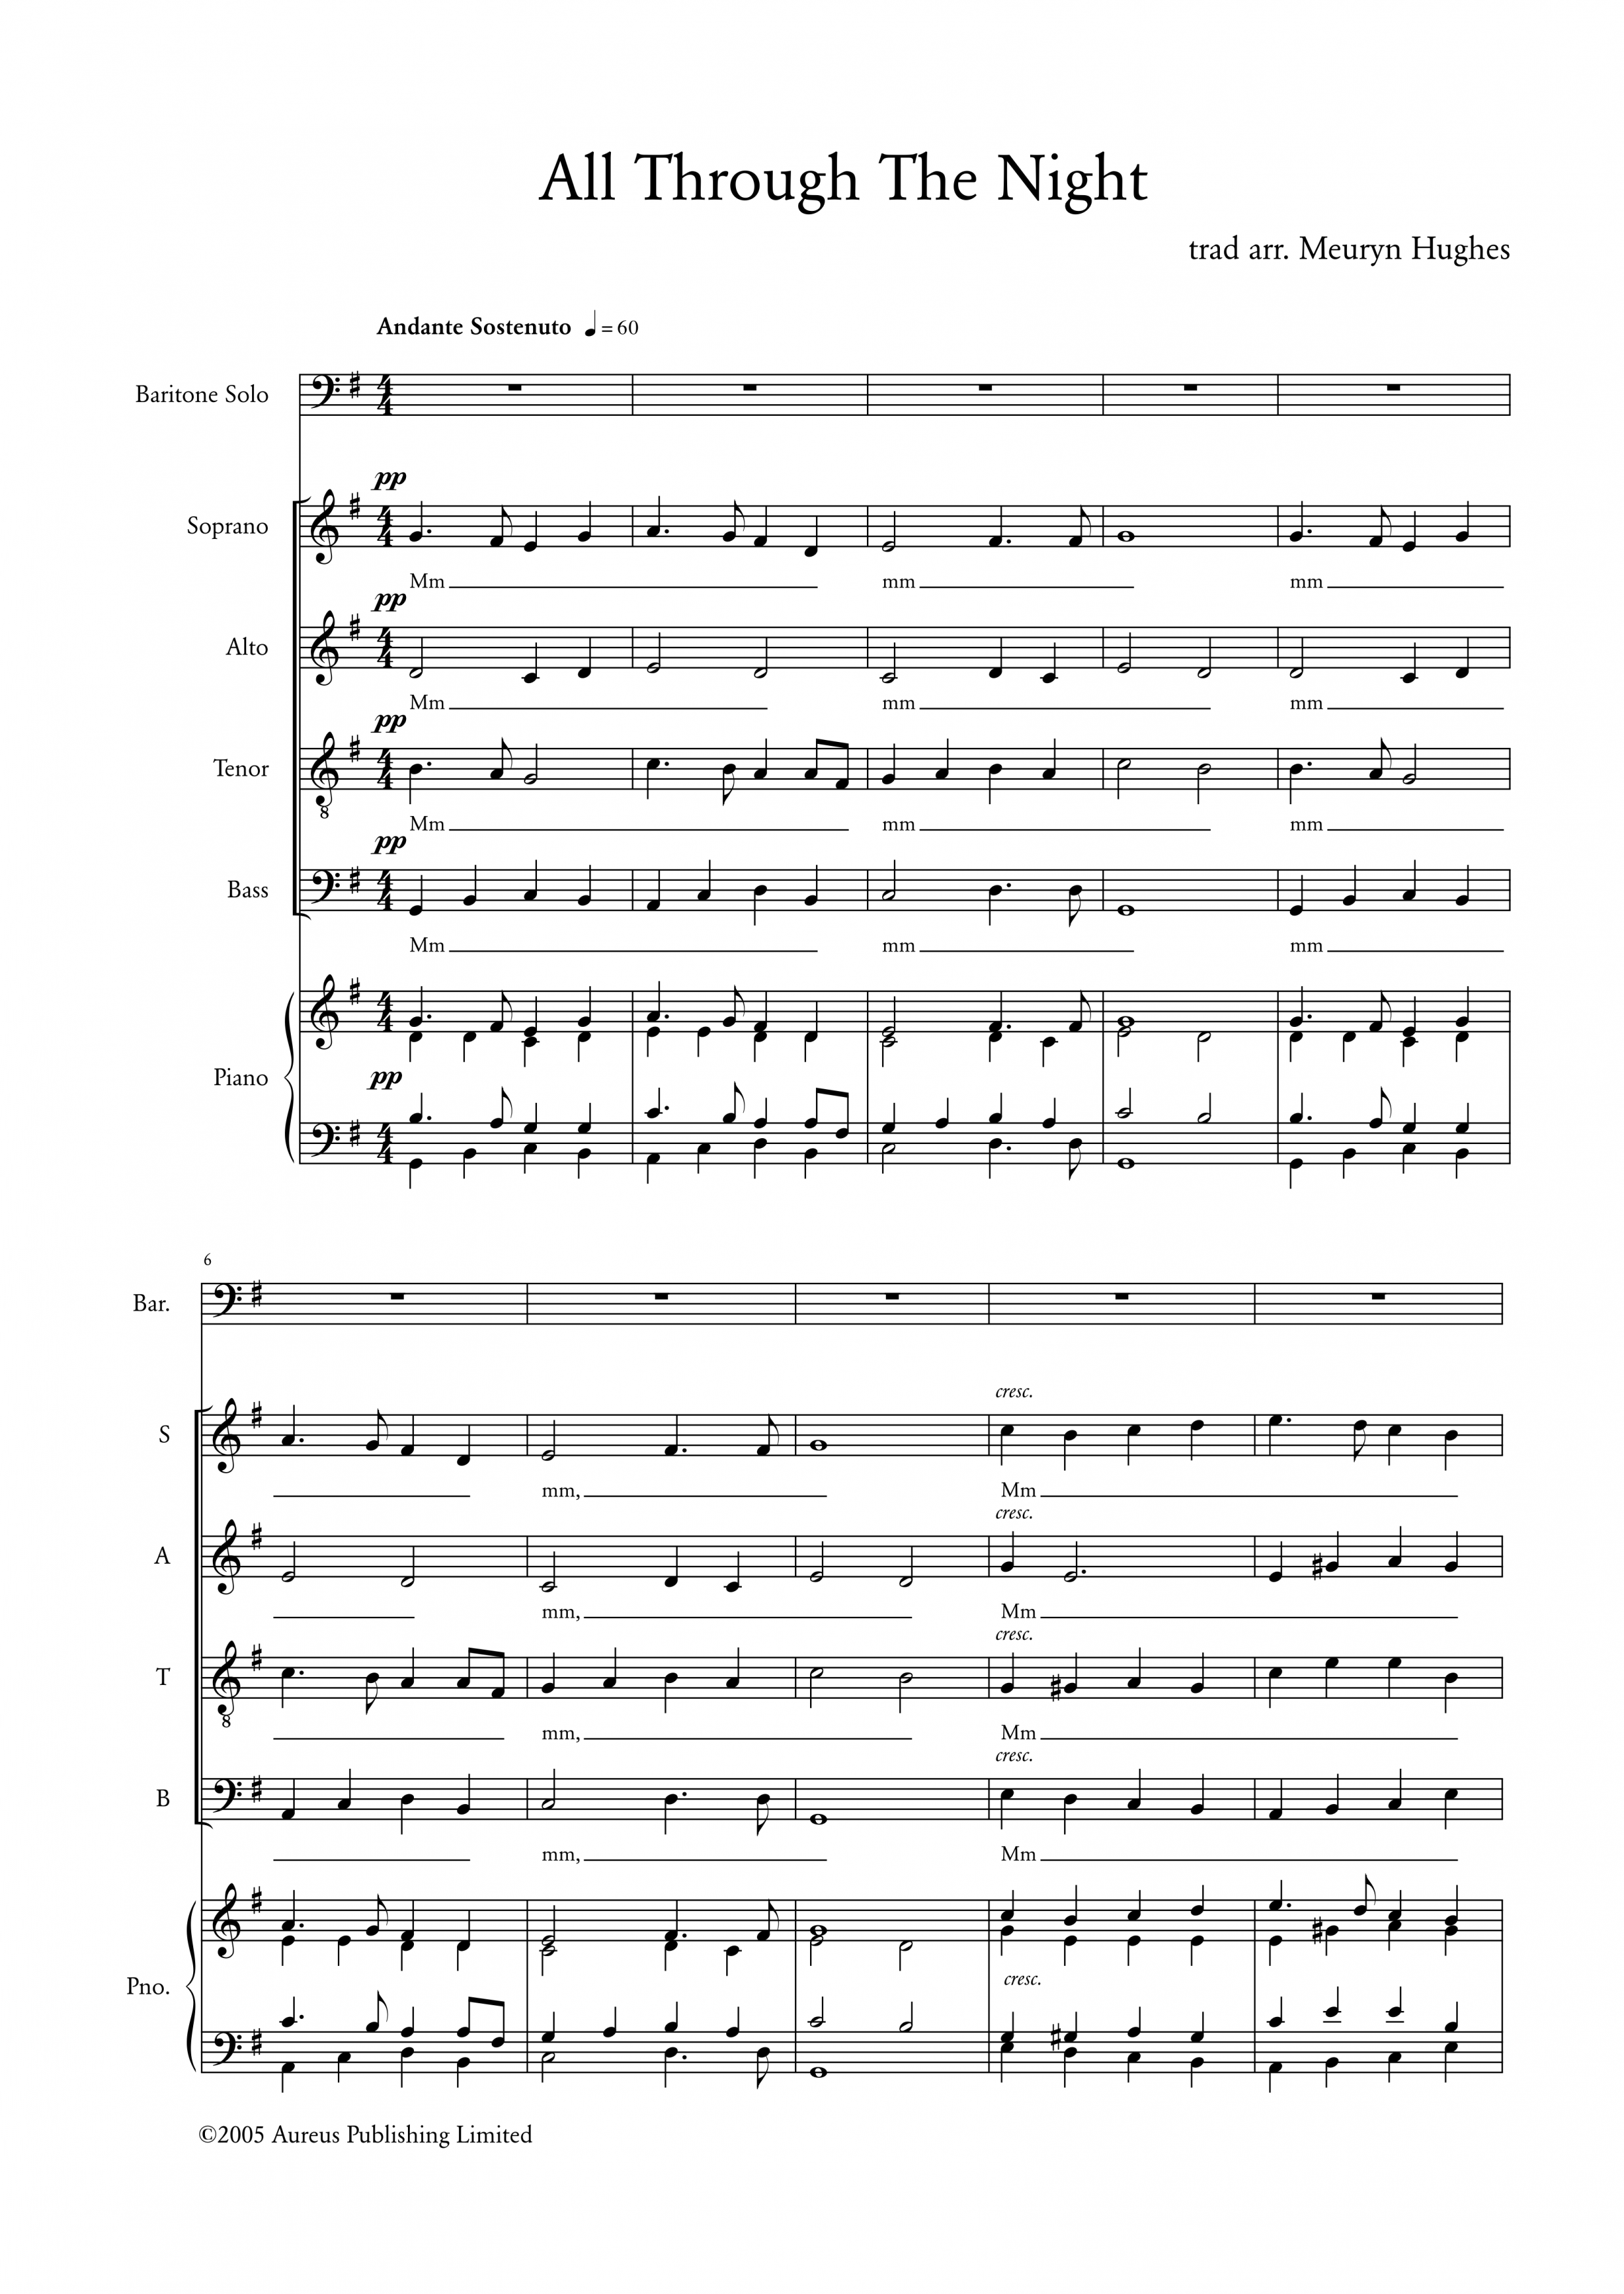 065 All Through The Night SATB